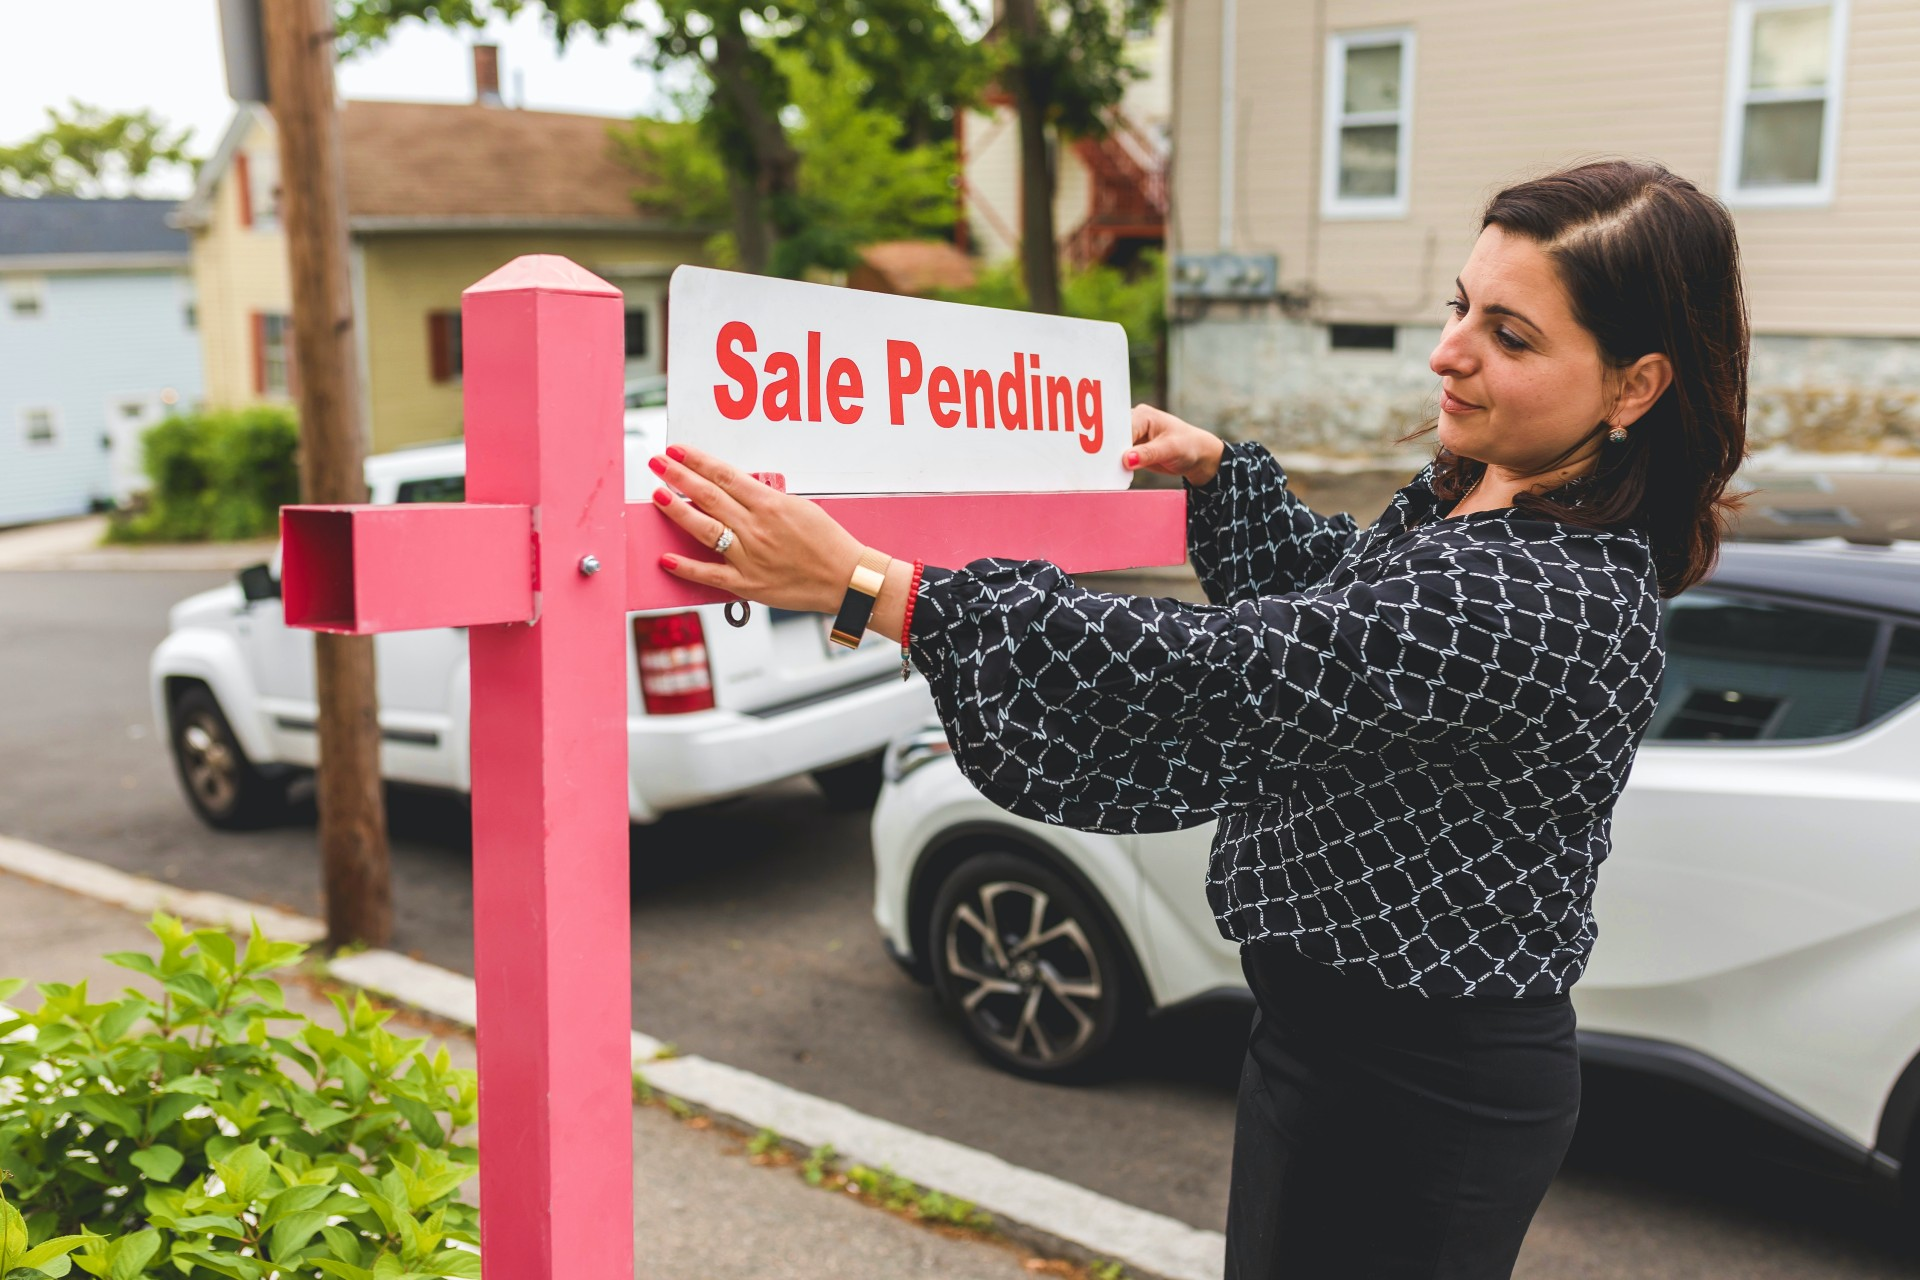 Your primary occupation might be something completely different, but it's always a good idea to invest in real estate when you're young.